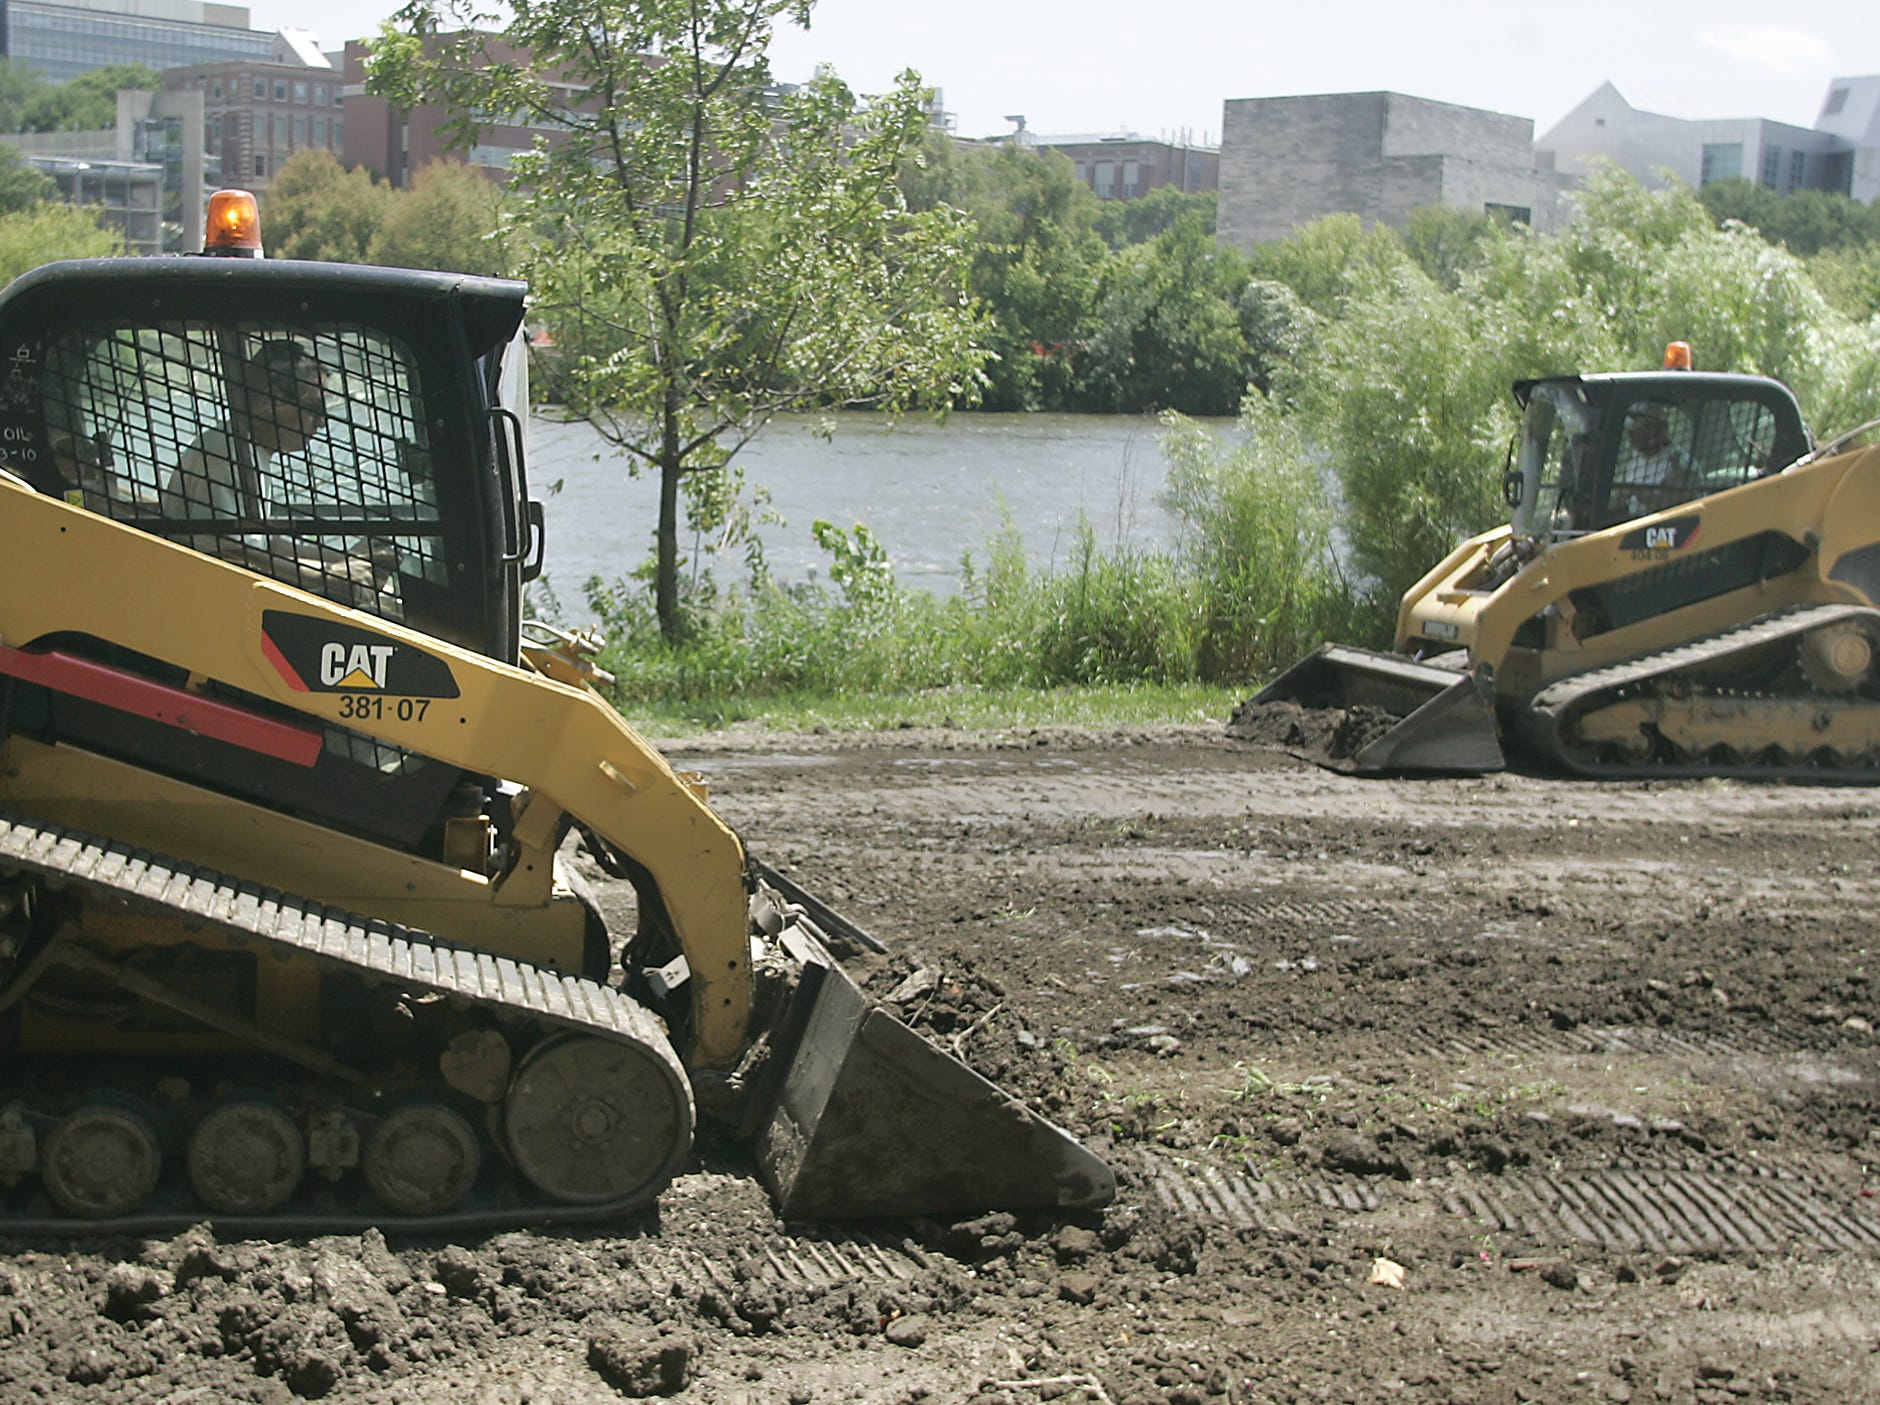 Bobcats excavate the ground around the sidewalk project between the flooded UI Art Museum and Art School, along the Iowa river, Thursday, July 22, 2010, in Iowa City, Iowa.